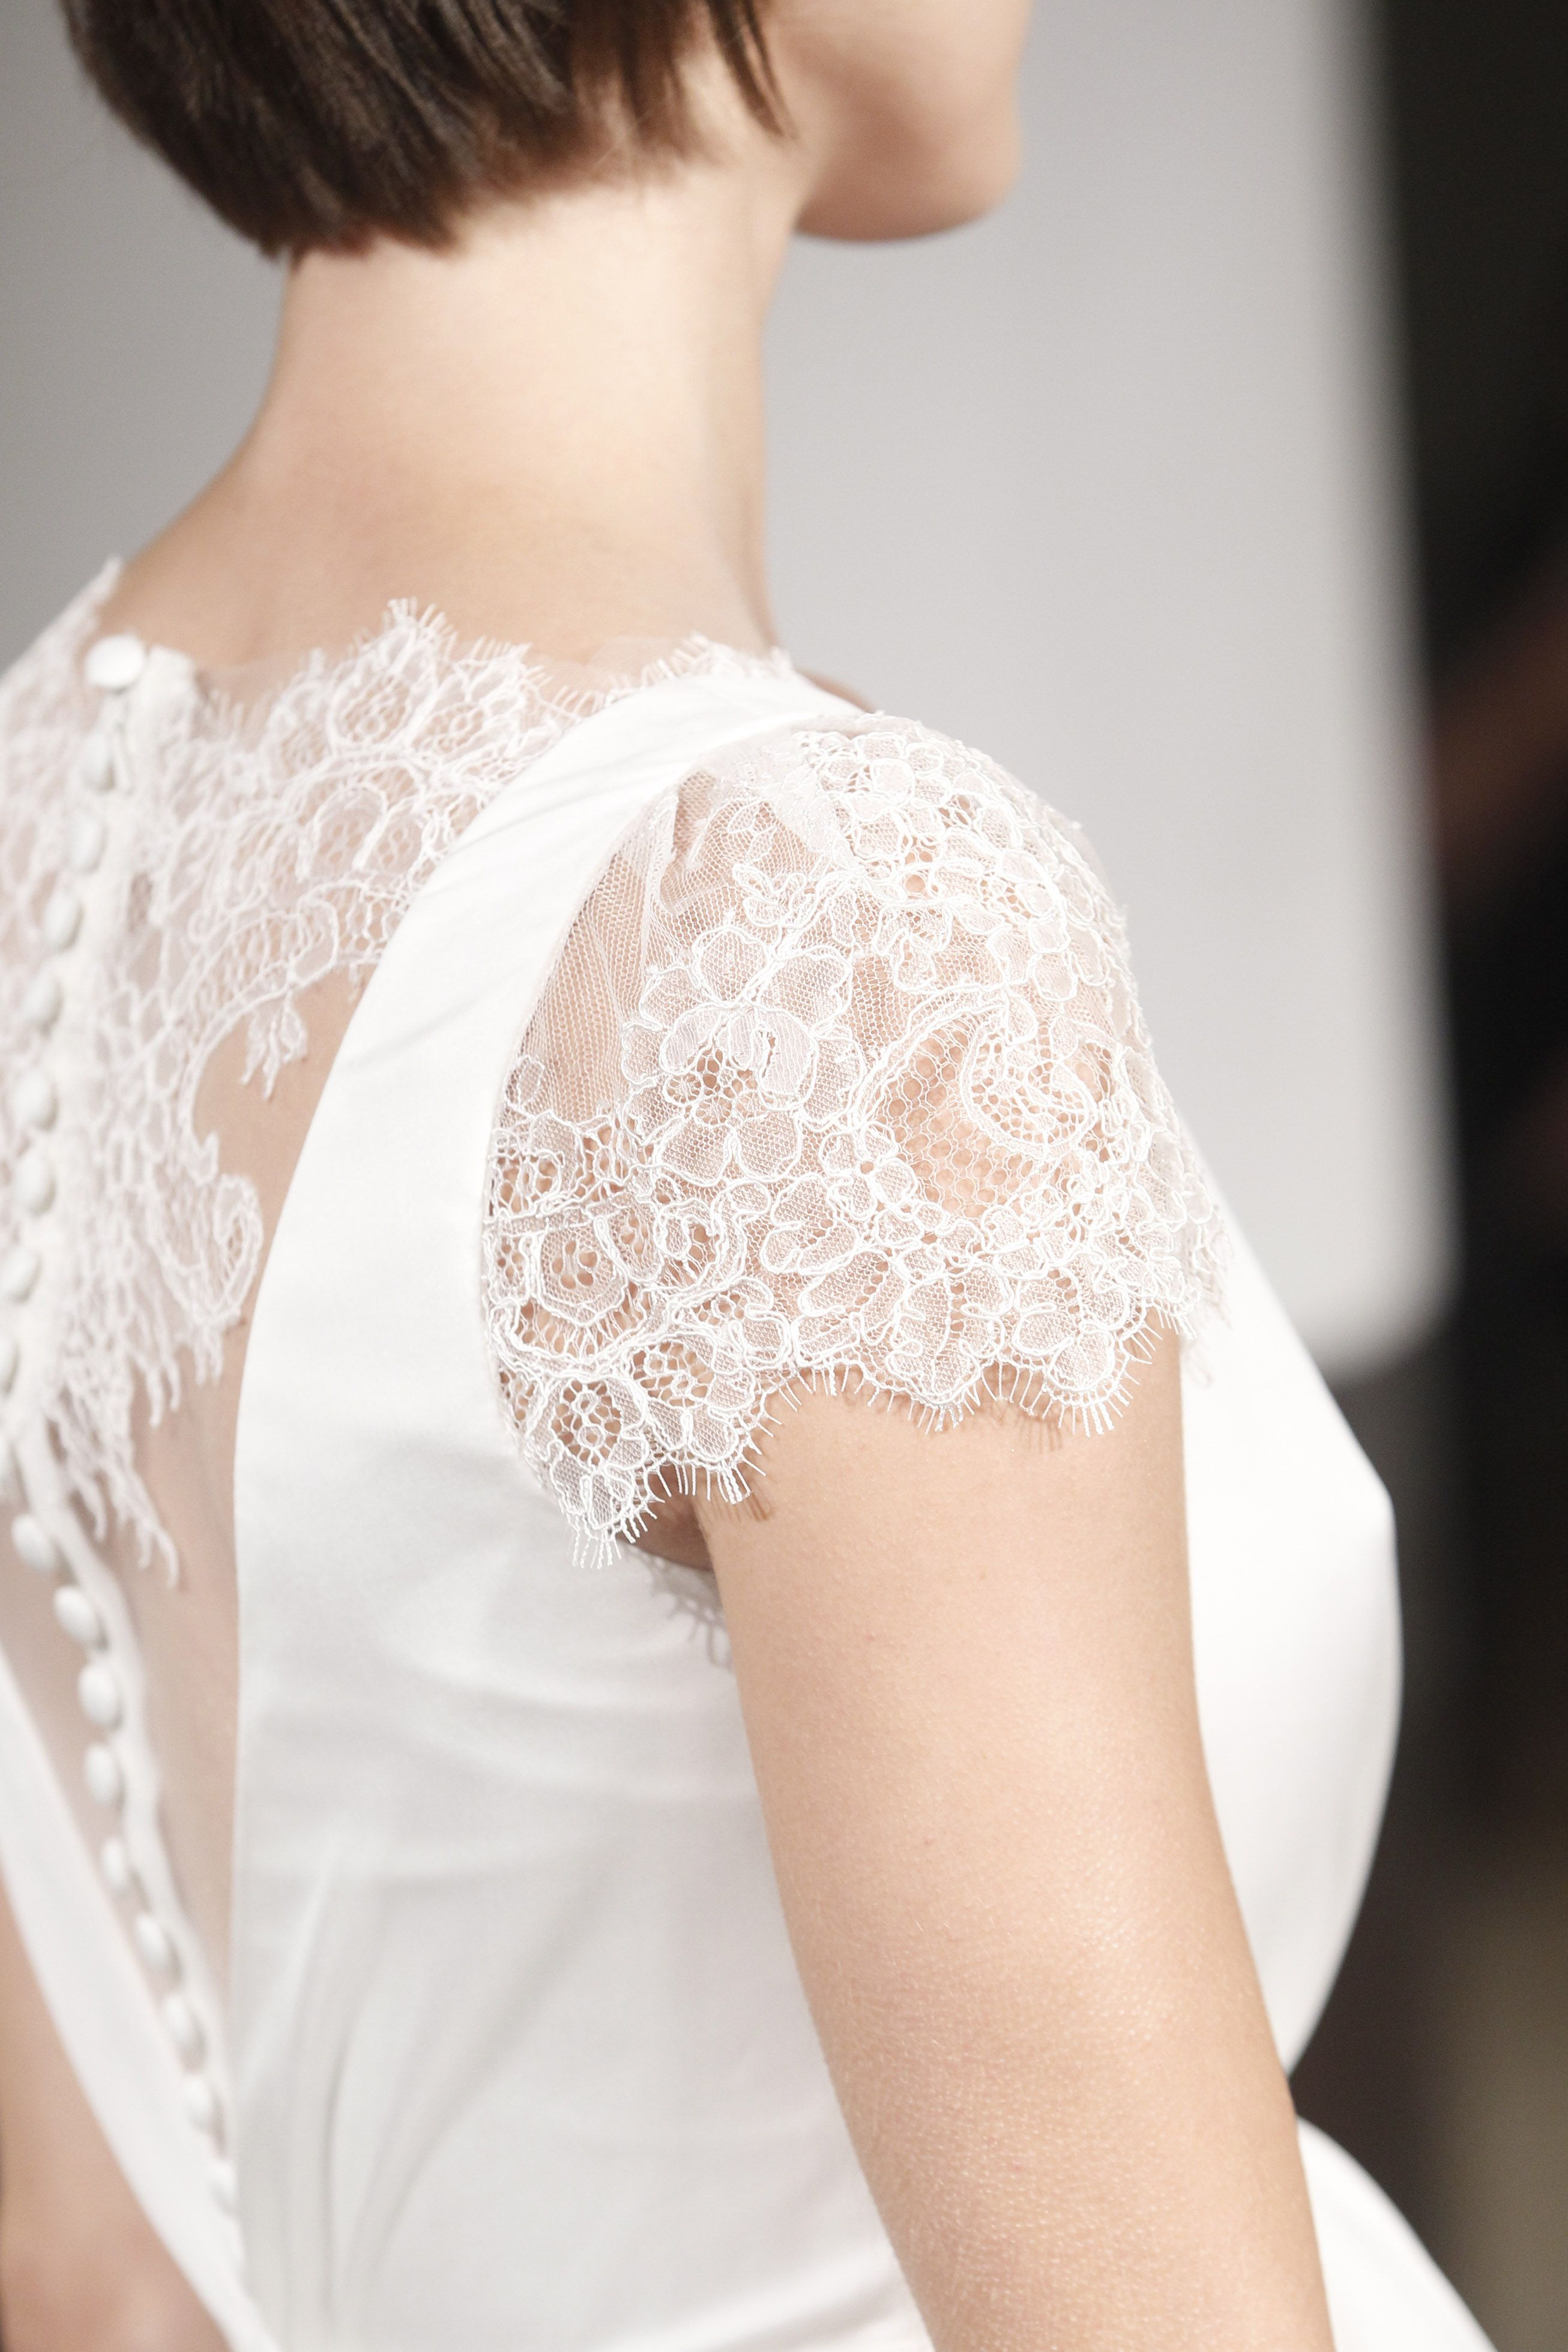 Lace cap sleeve wedding dress from Emma & Grace Bridal Studio || See ...